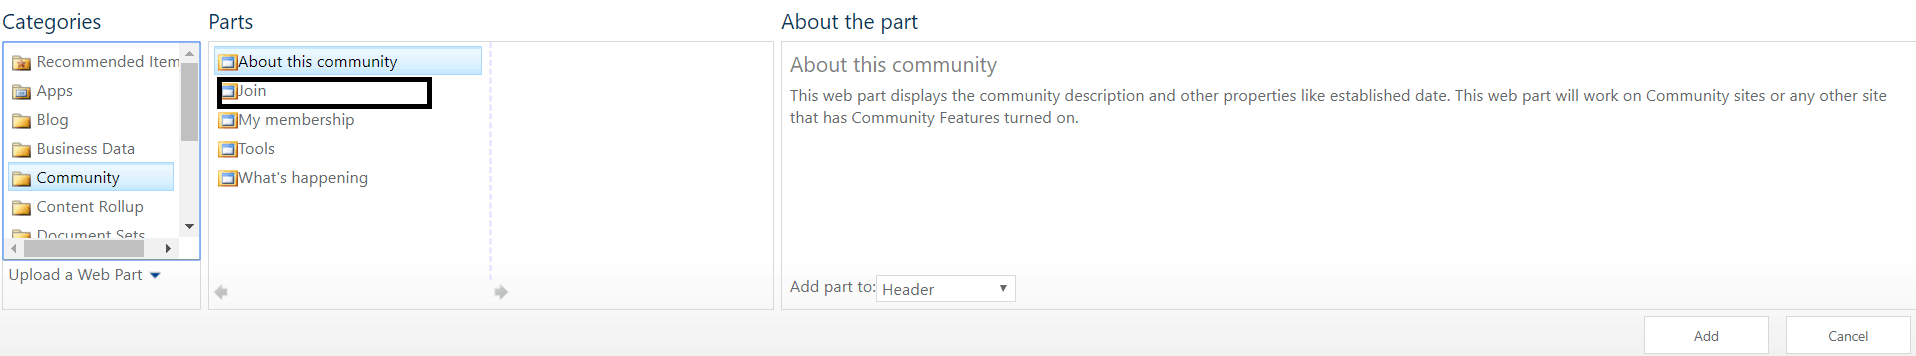 sharepoint 2013 join community button